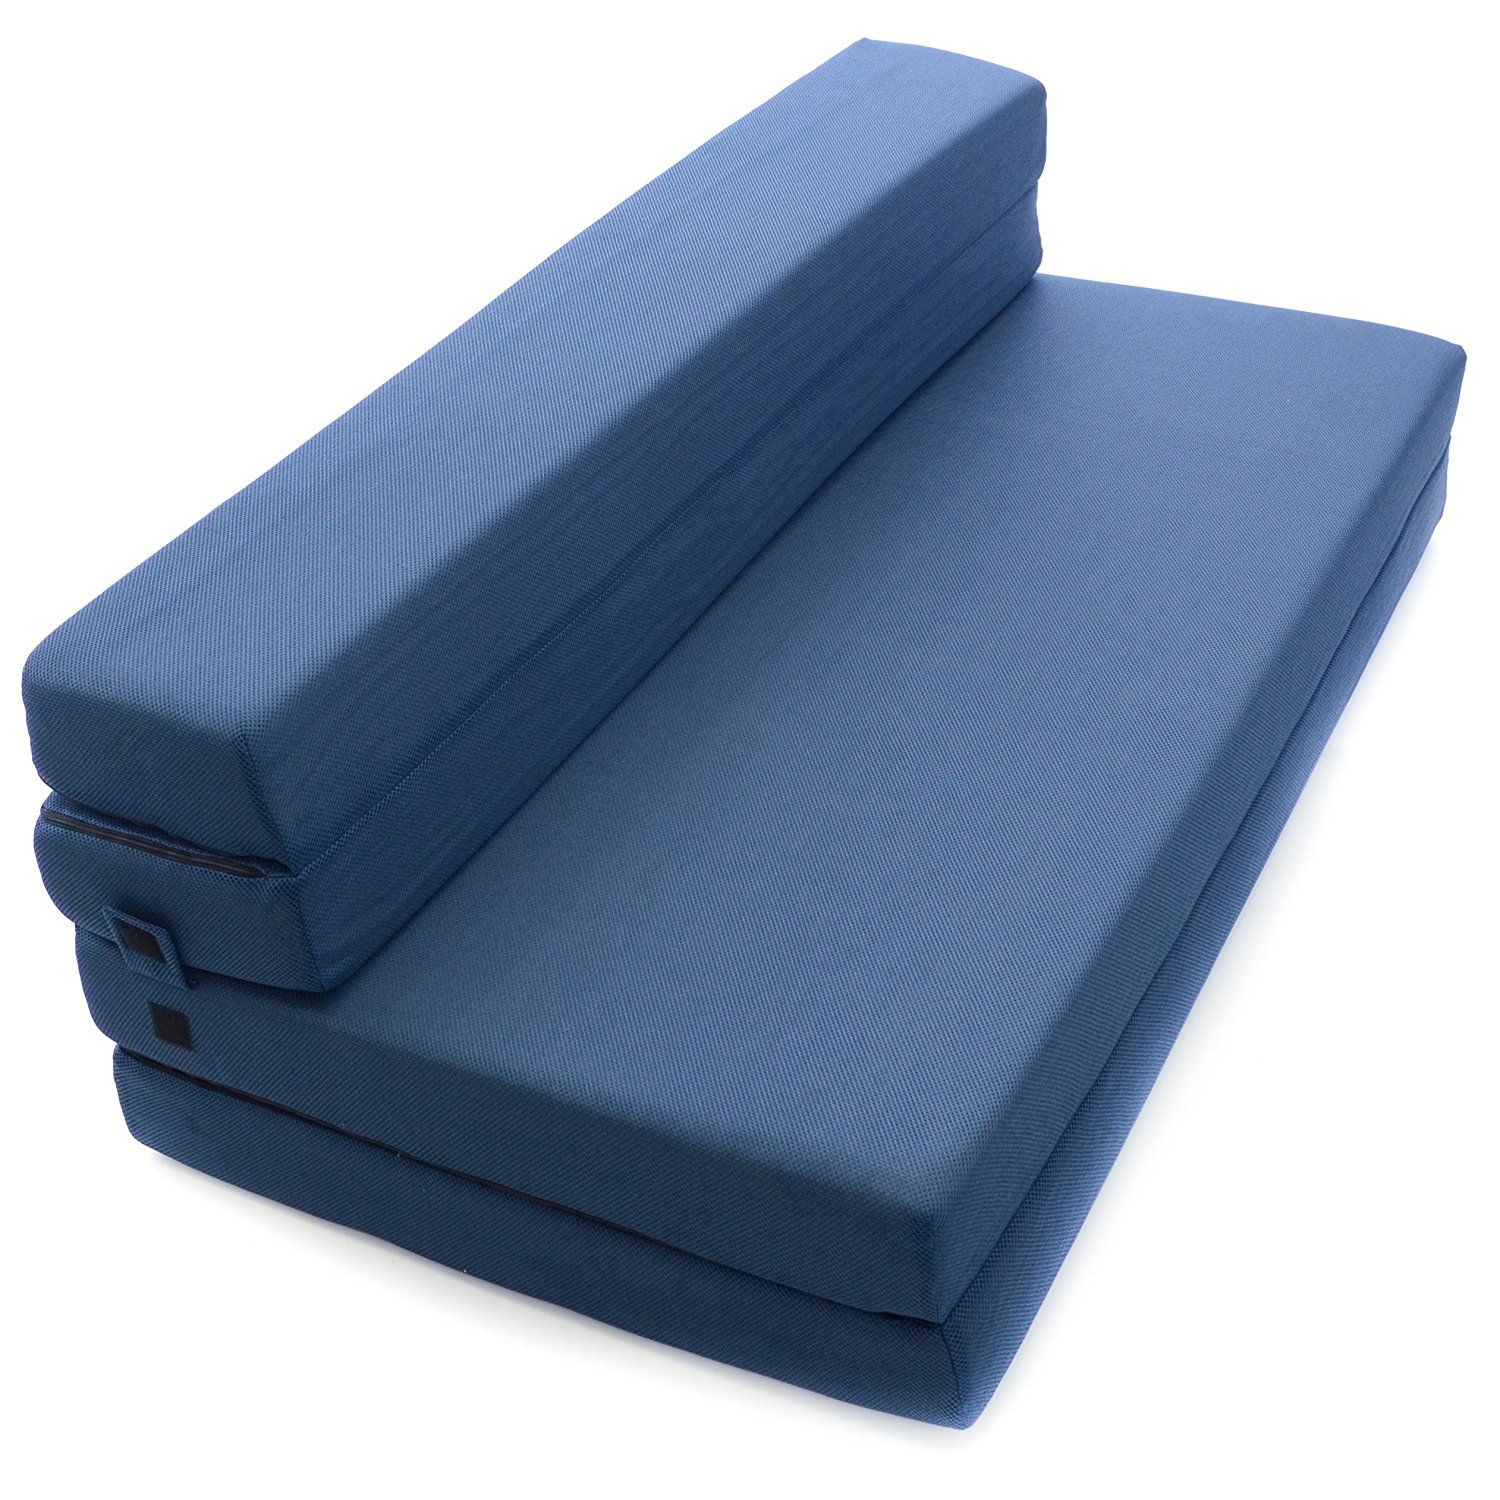 Best Sofa Bed For Rv Milliard Folding Sofa Bed Sofa Bed Folding Mattress Mattress Sofa